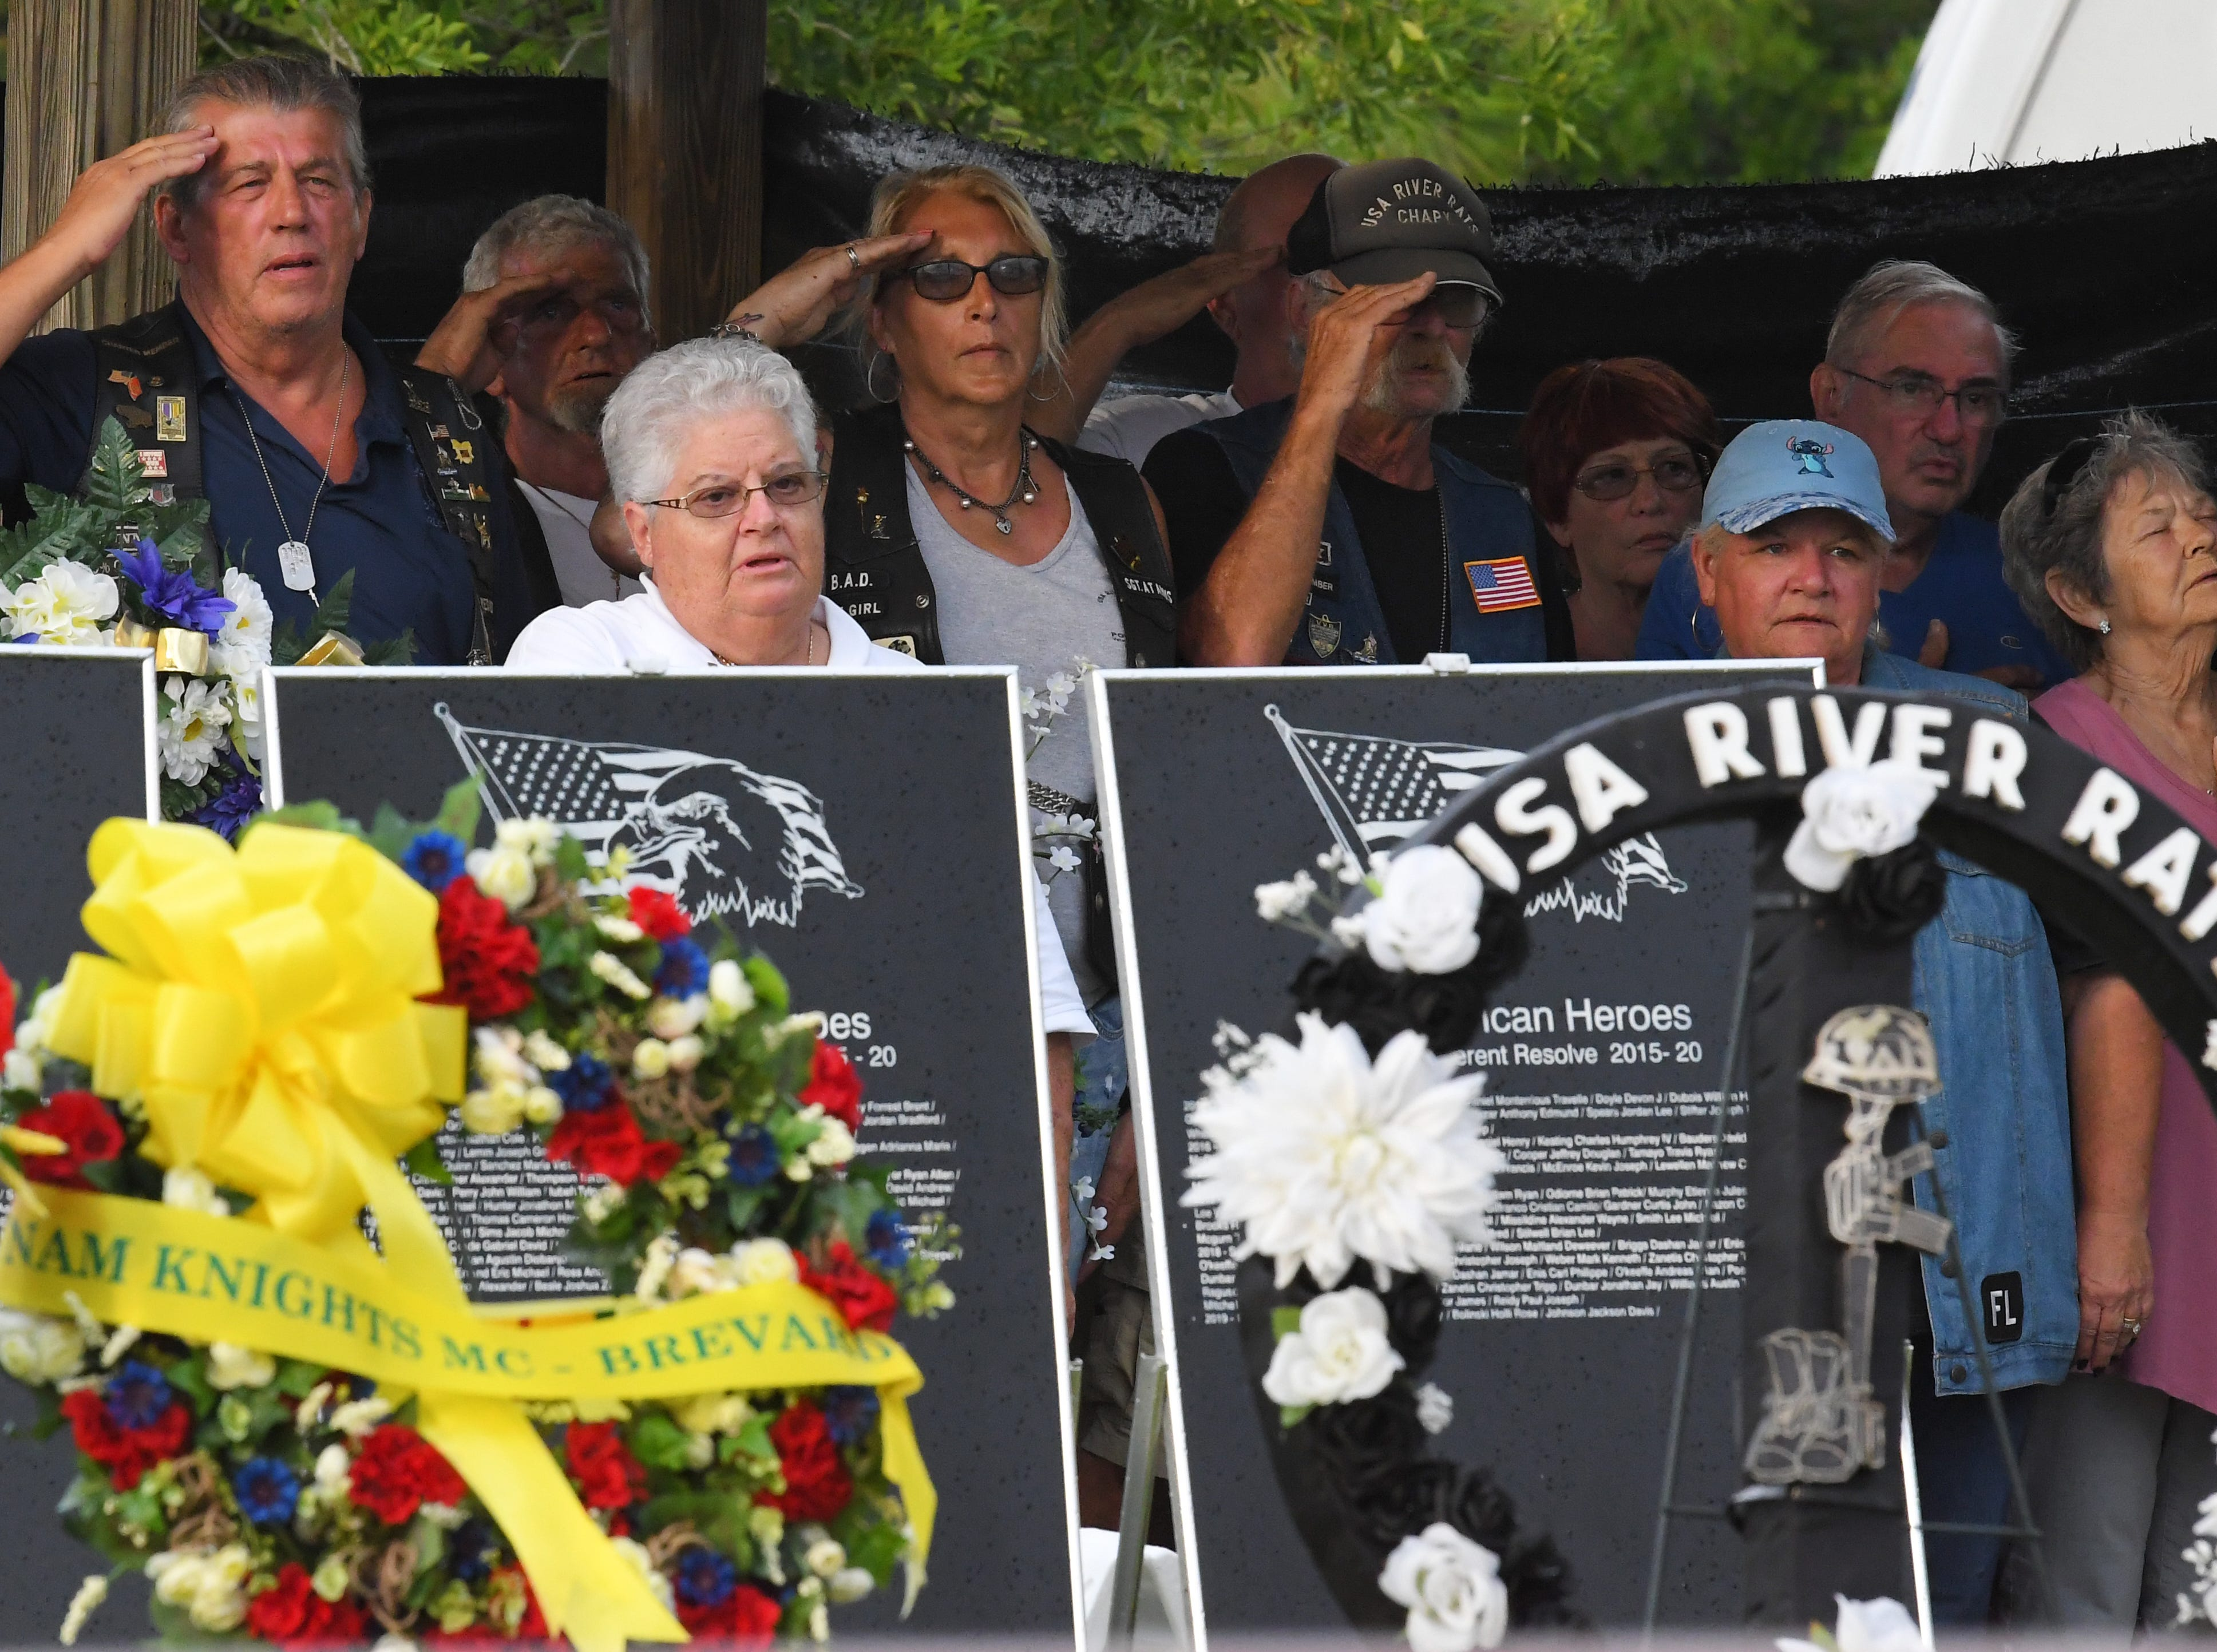 Monday's presentation of wreaths and opening ceremony at the Vietnam Traveling Memorial Wall, which will be set up until May 12. It is part of The 32nd Annual Vietnam and All Veterans Reunion, a free event open to the public at Wickham Park in Melbourne May 9-12.